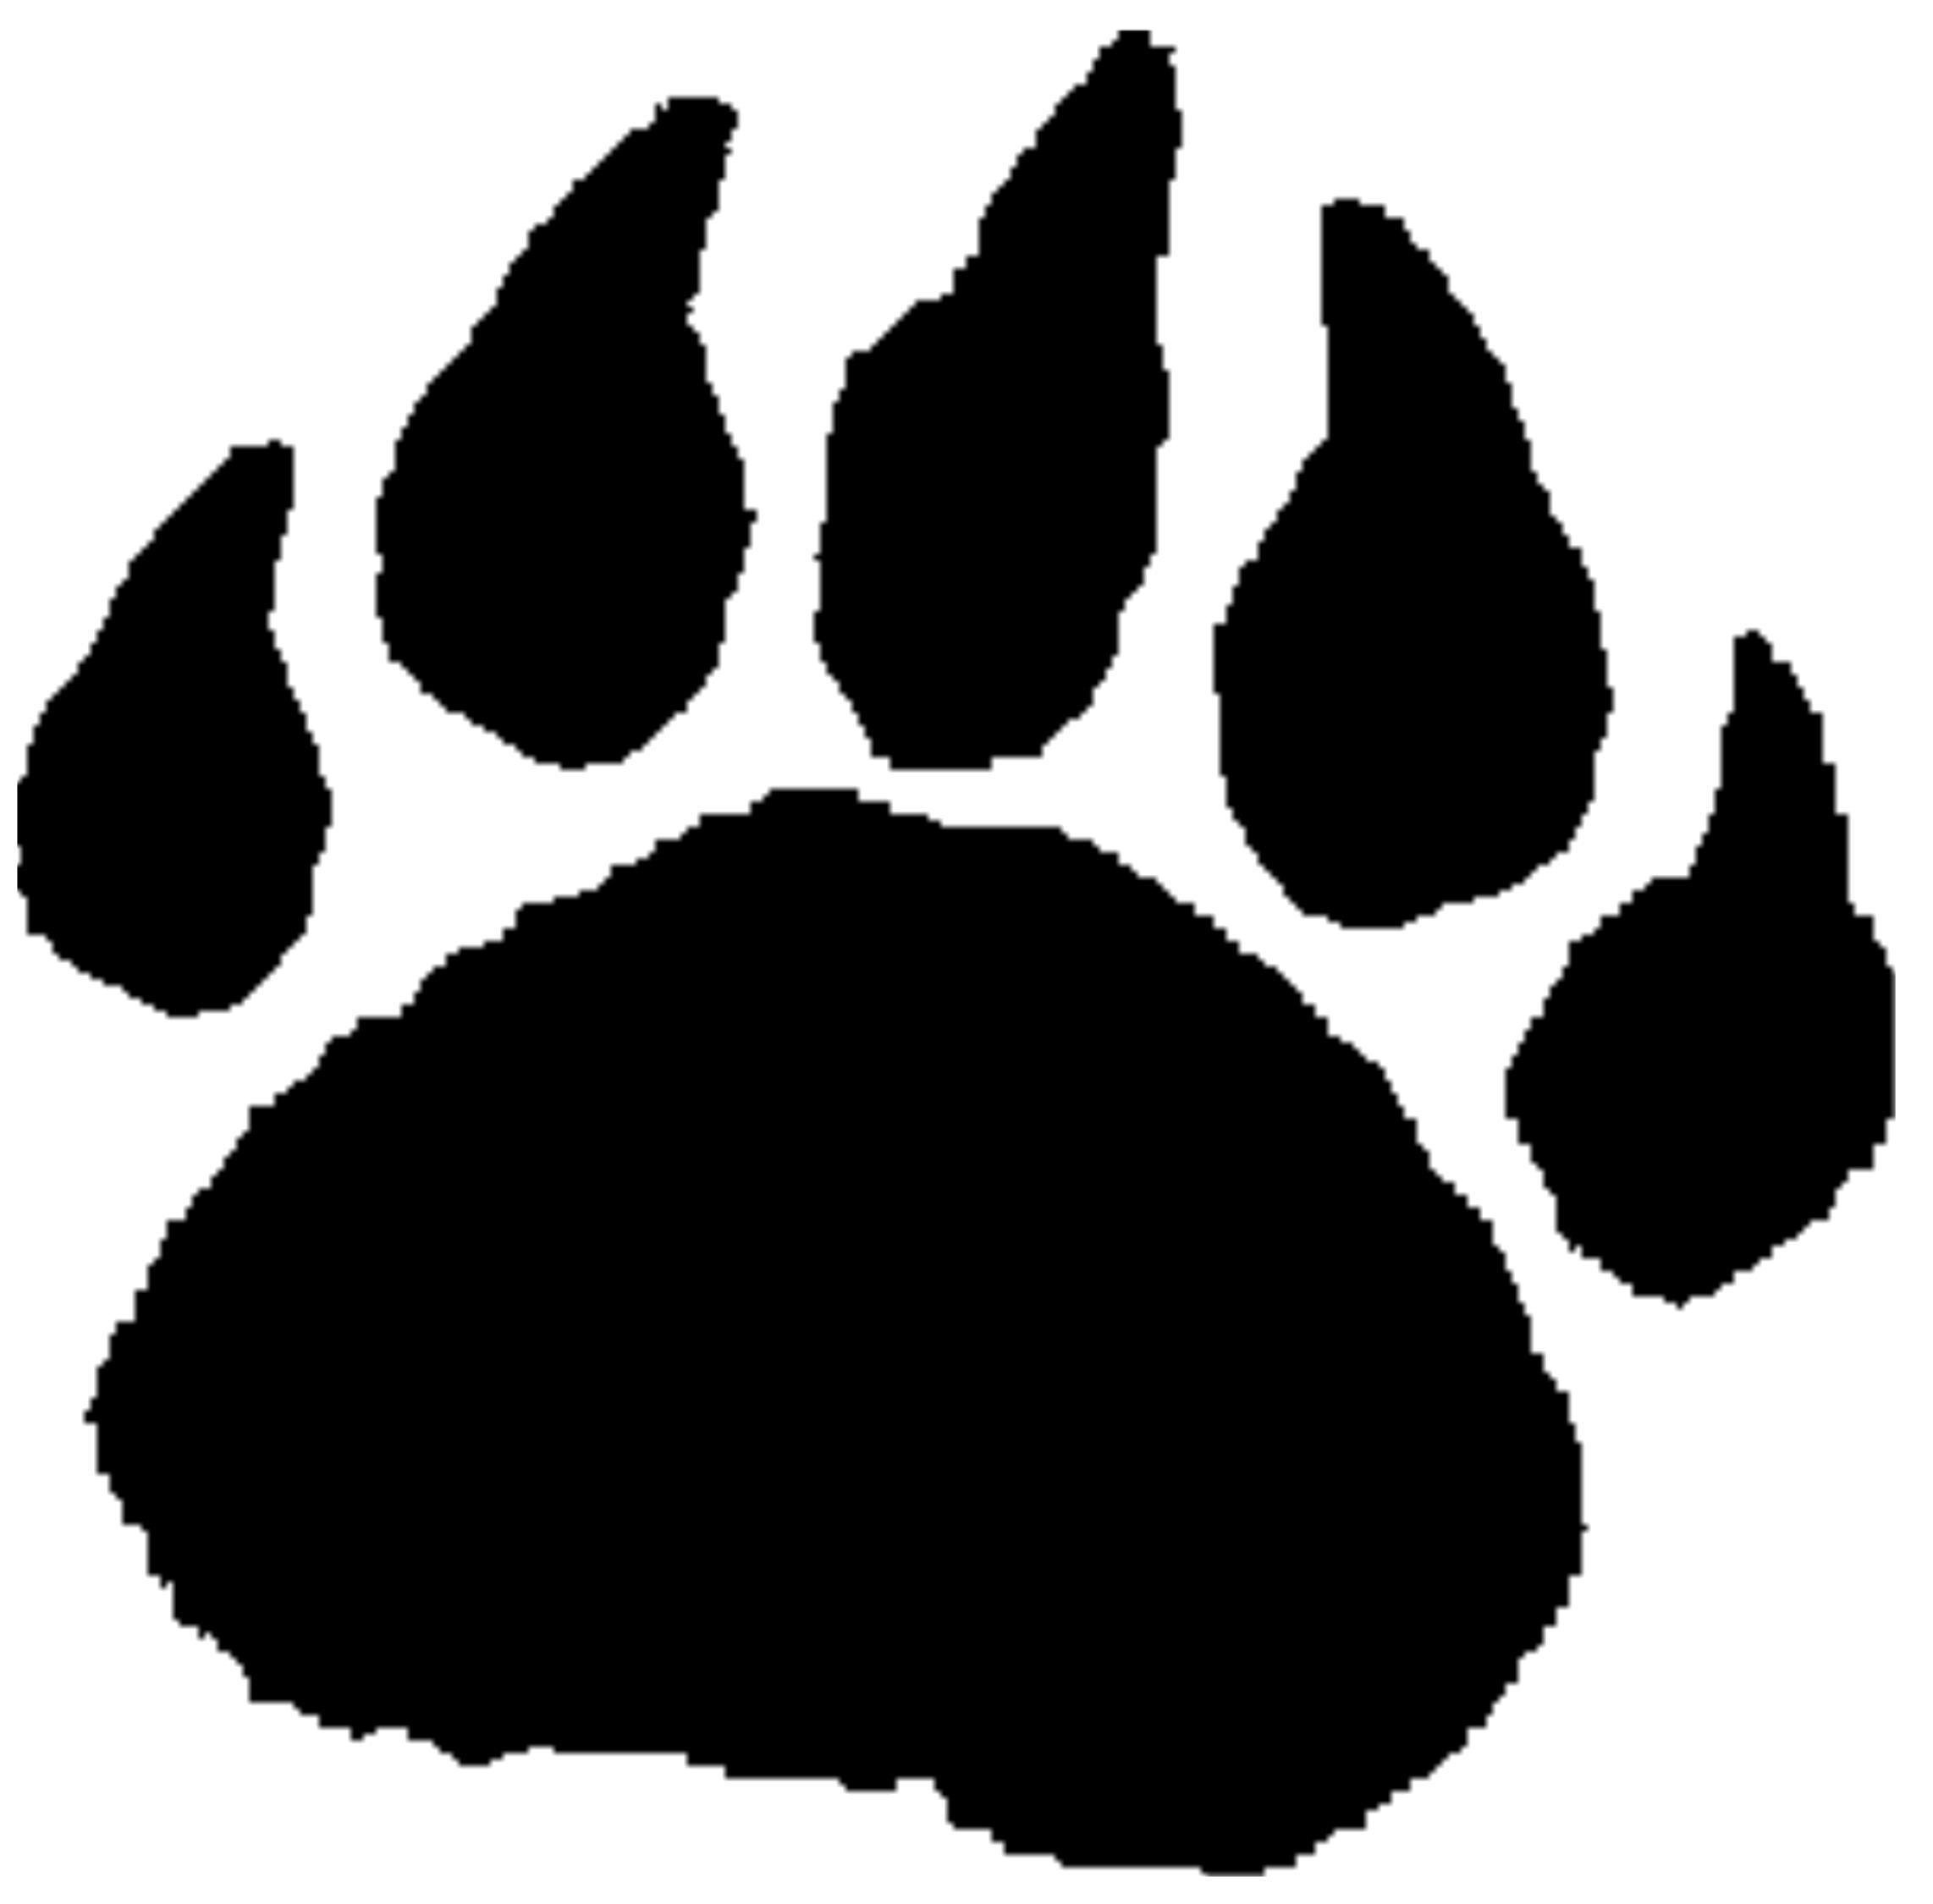 Bear Paw Print Clipart - ClipArt Best